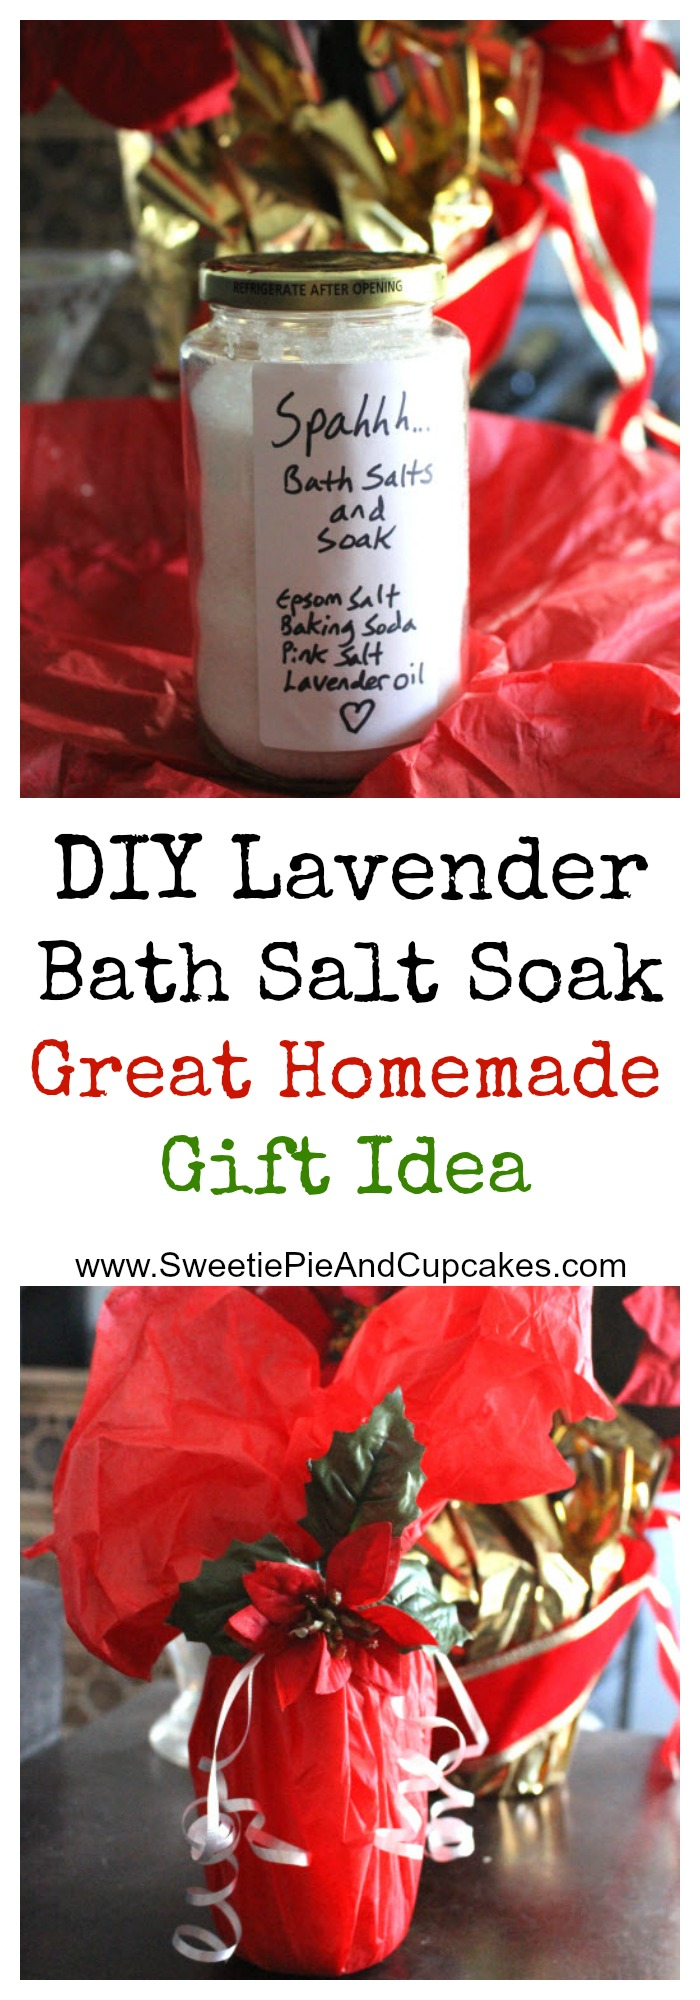 DIY Bath Salt Soak